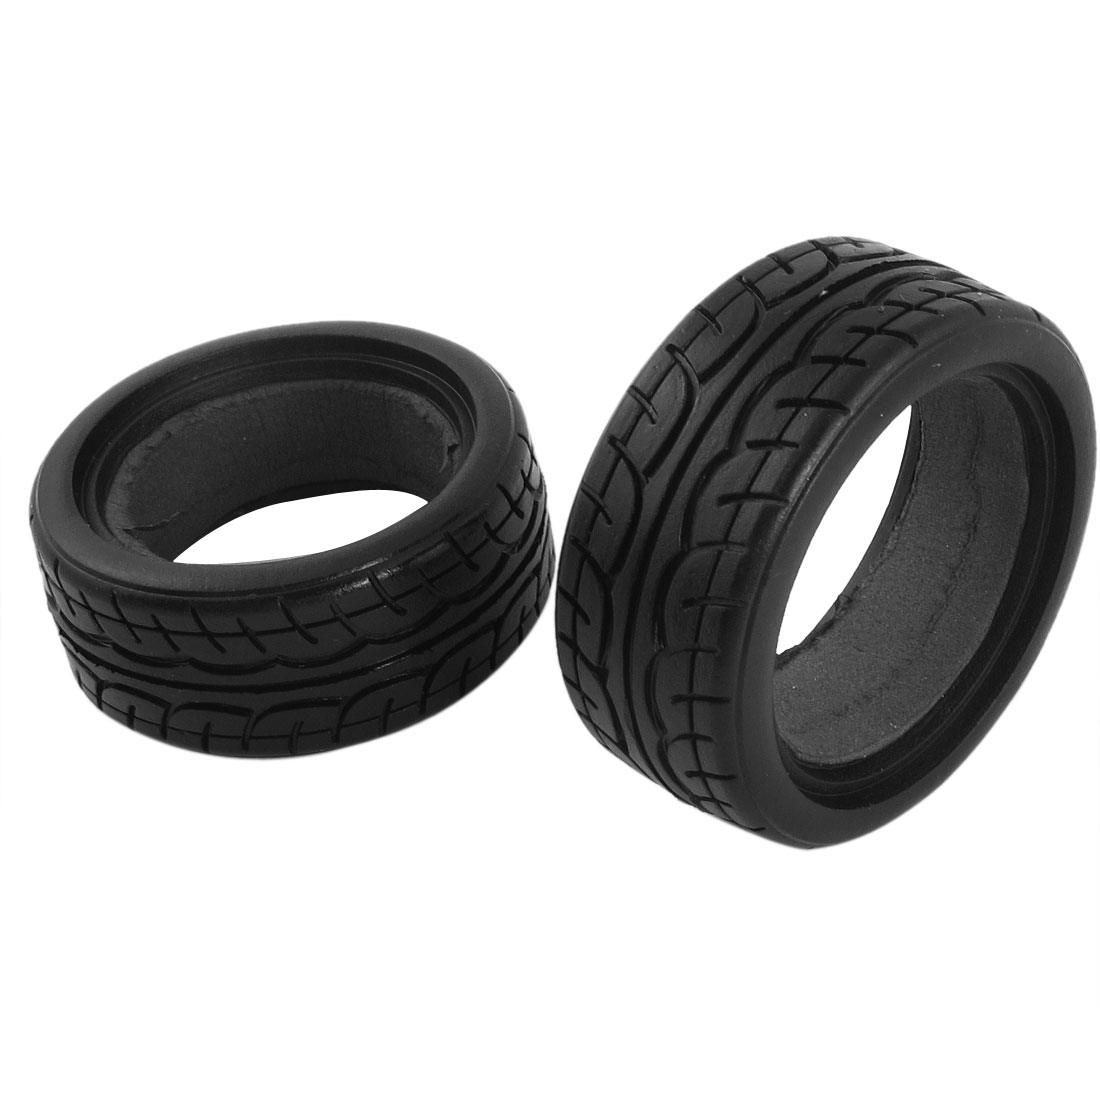 2 Pcs Black Racing Speed Rubber Tires for 1/10 RC Model Flat Car Track